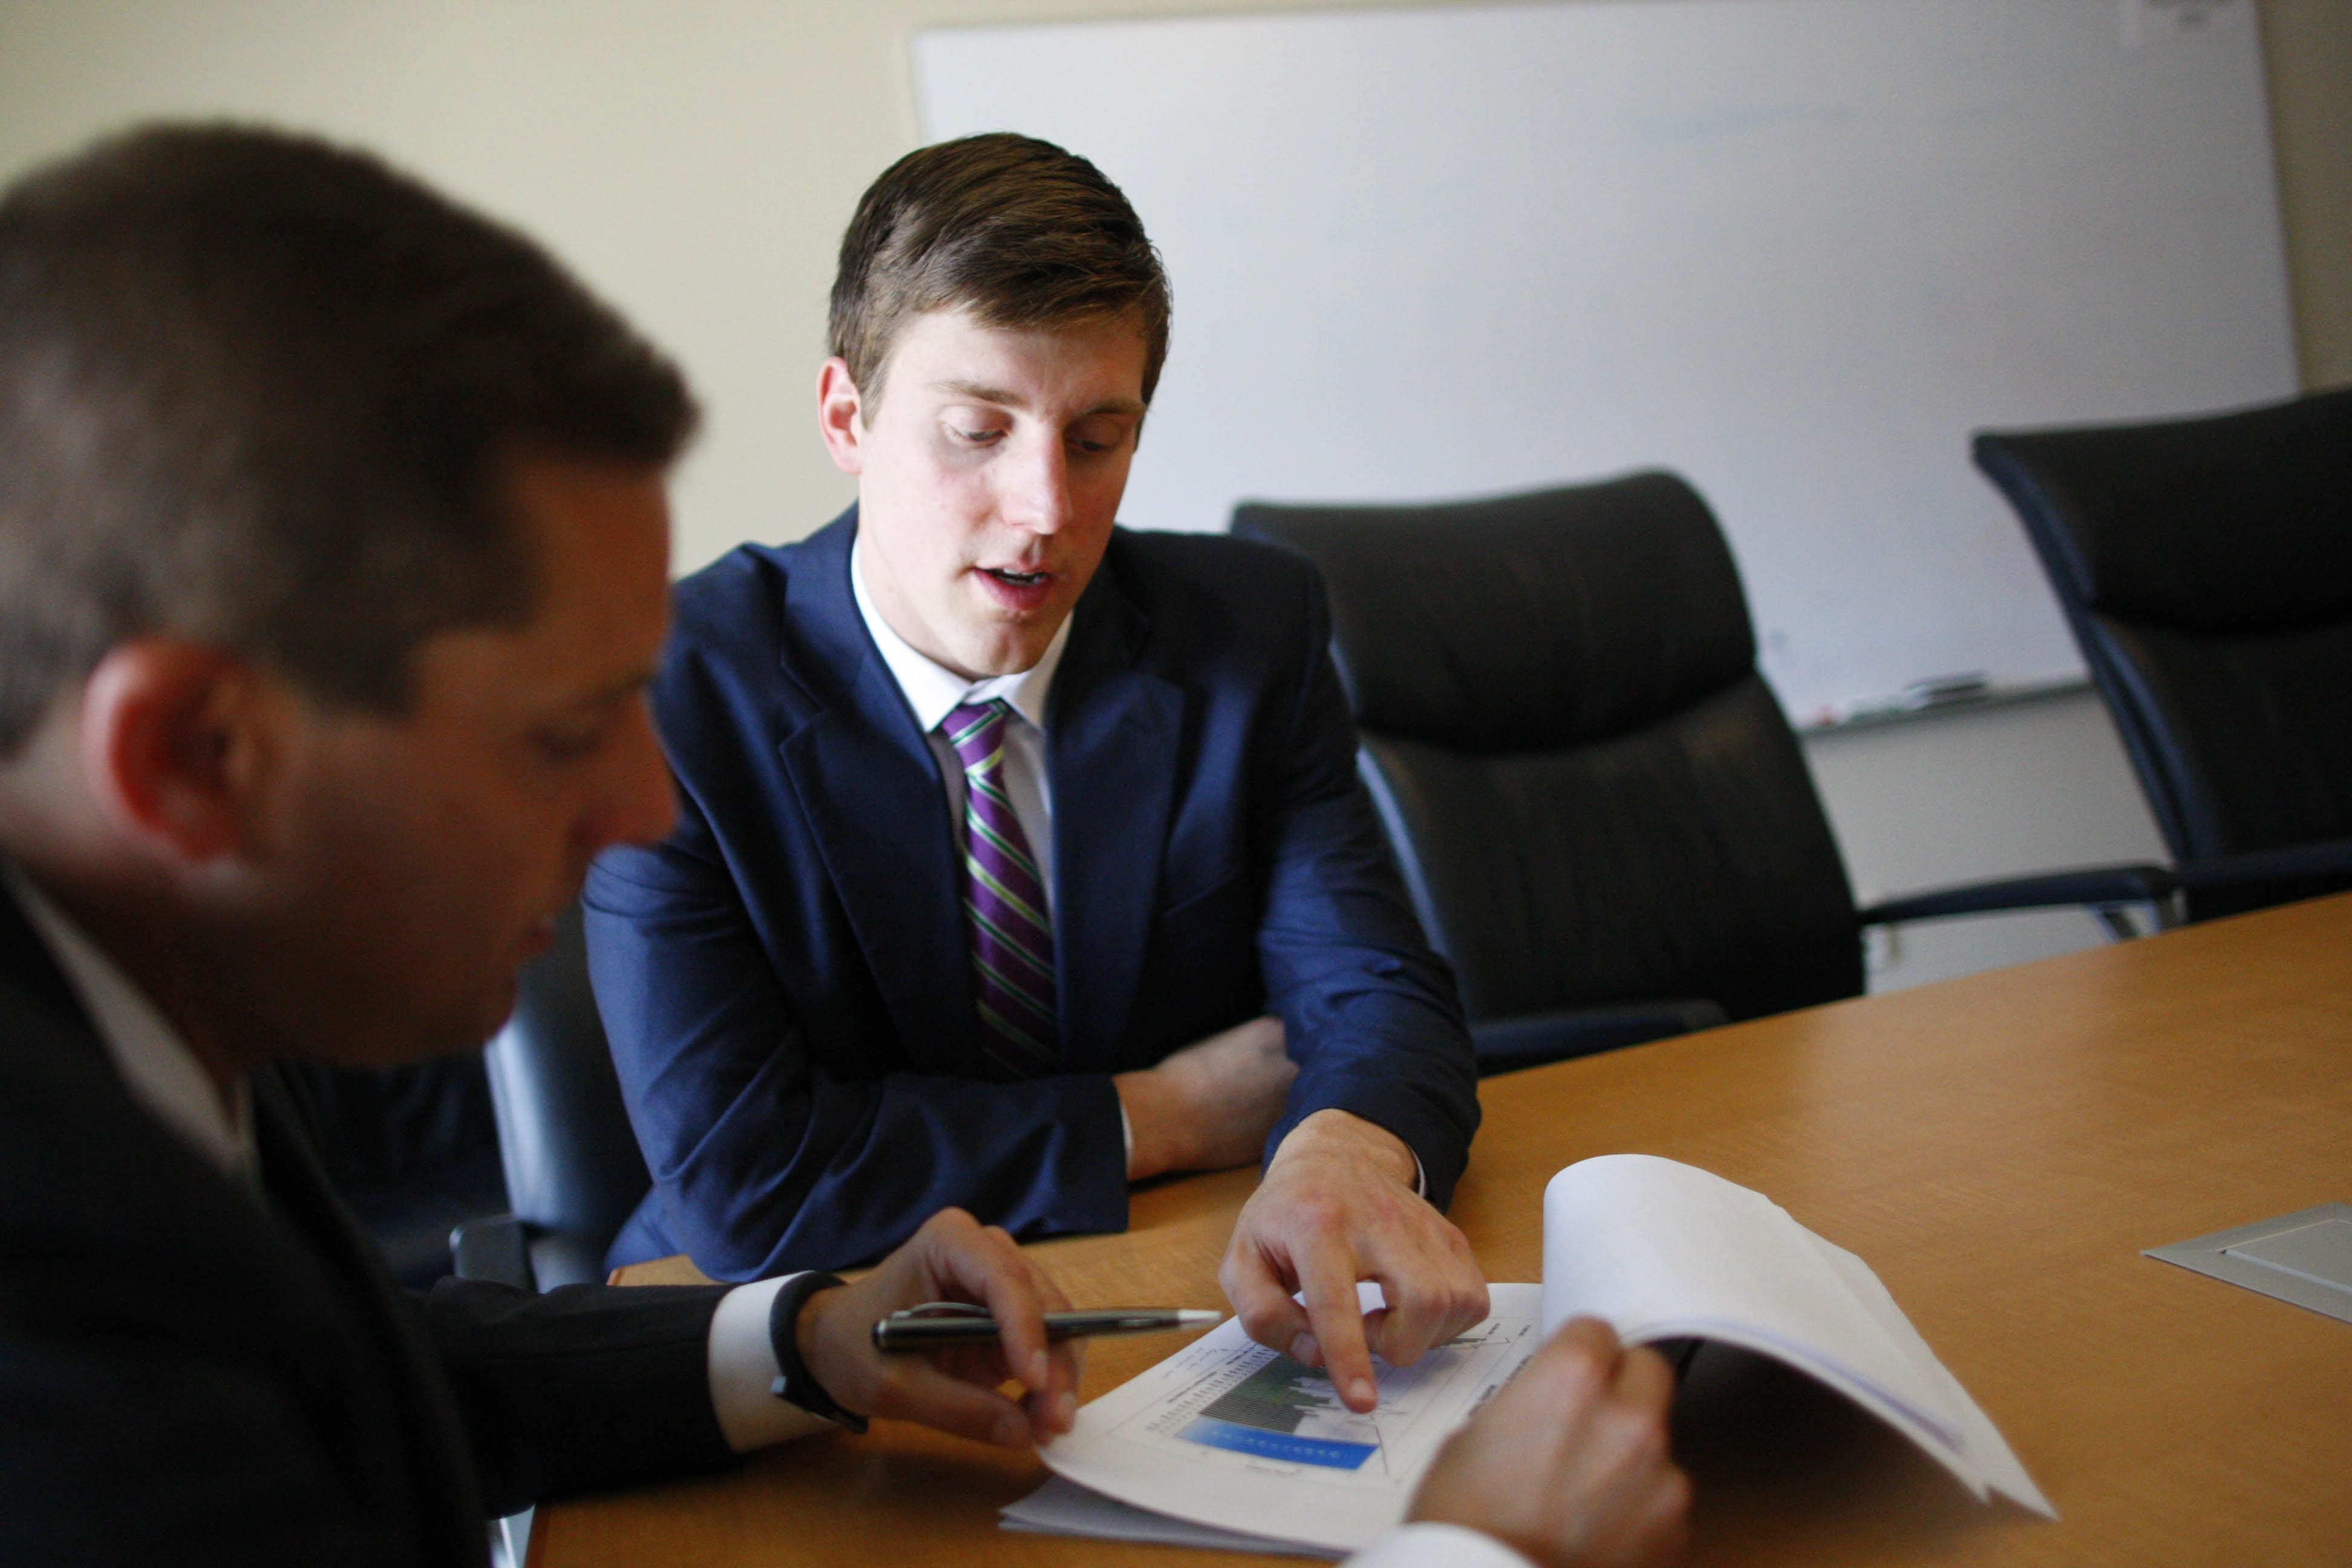 Taylor Hogenkamp, a management trainee at M&T Bank Securities, recently completed the Management Development Program, Thursday, July 17, 2014.  Here he looks over a spreadsheet with Bart Kresse, vice president of product management at M&T Securities.  (Derek Gee/Buffalo News)